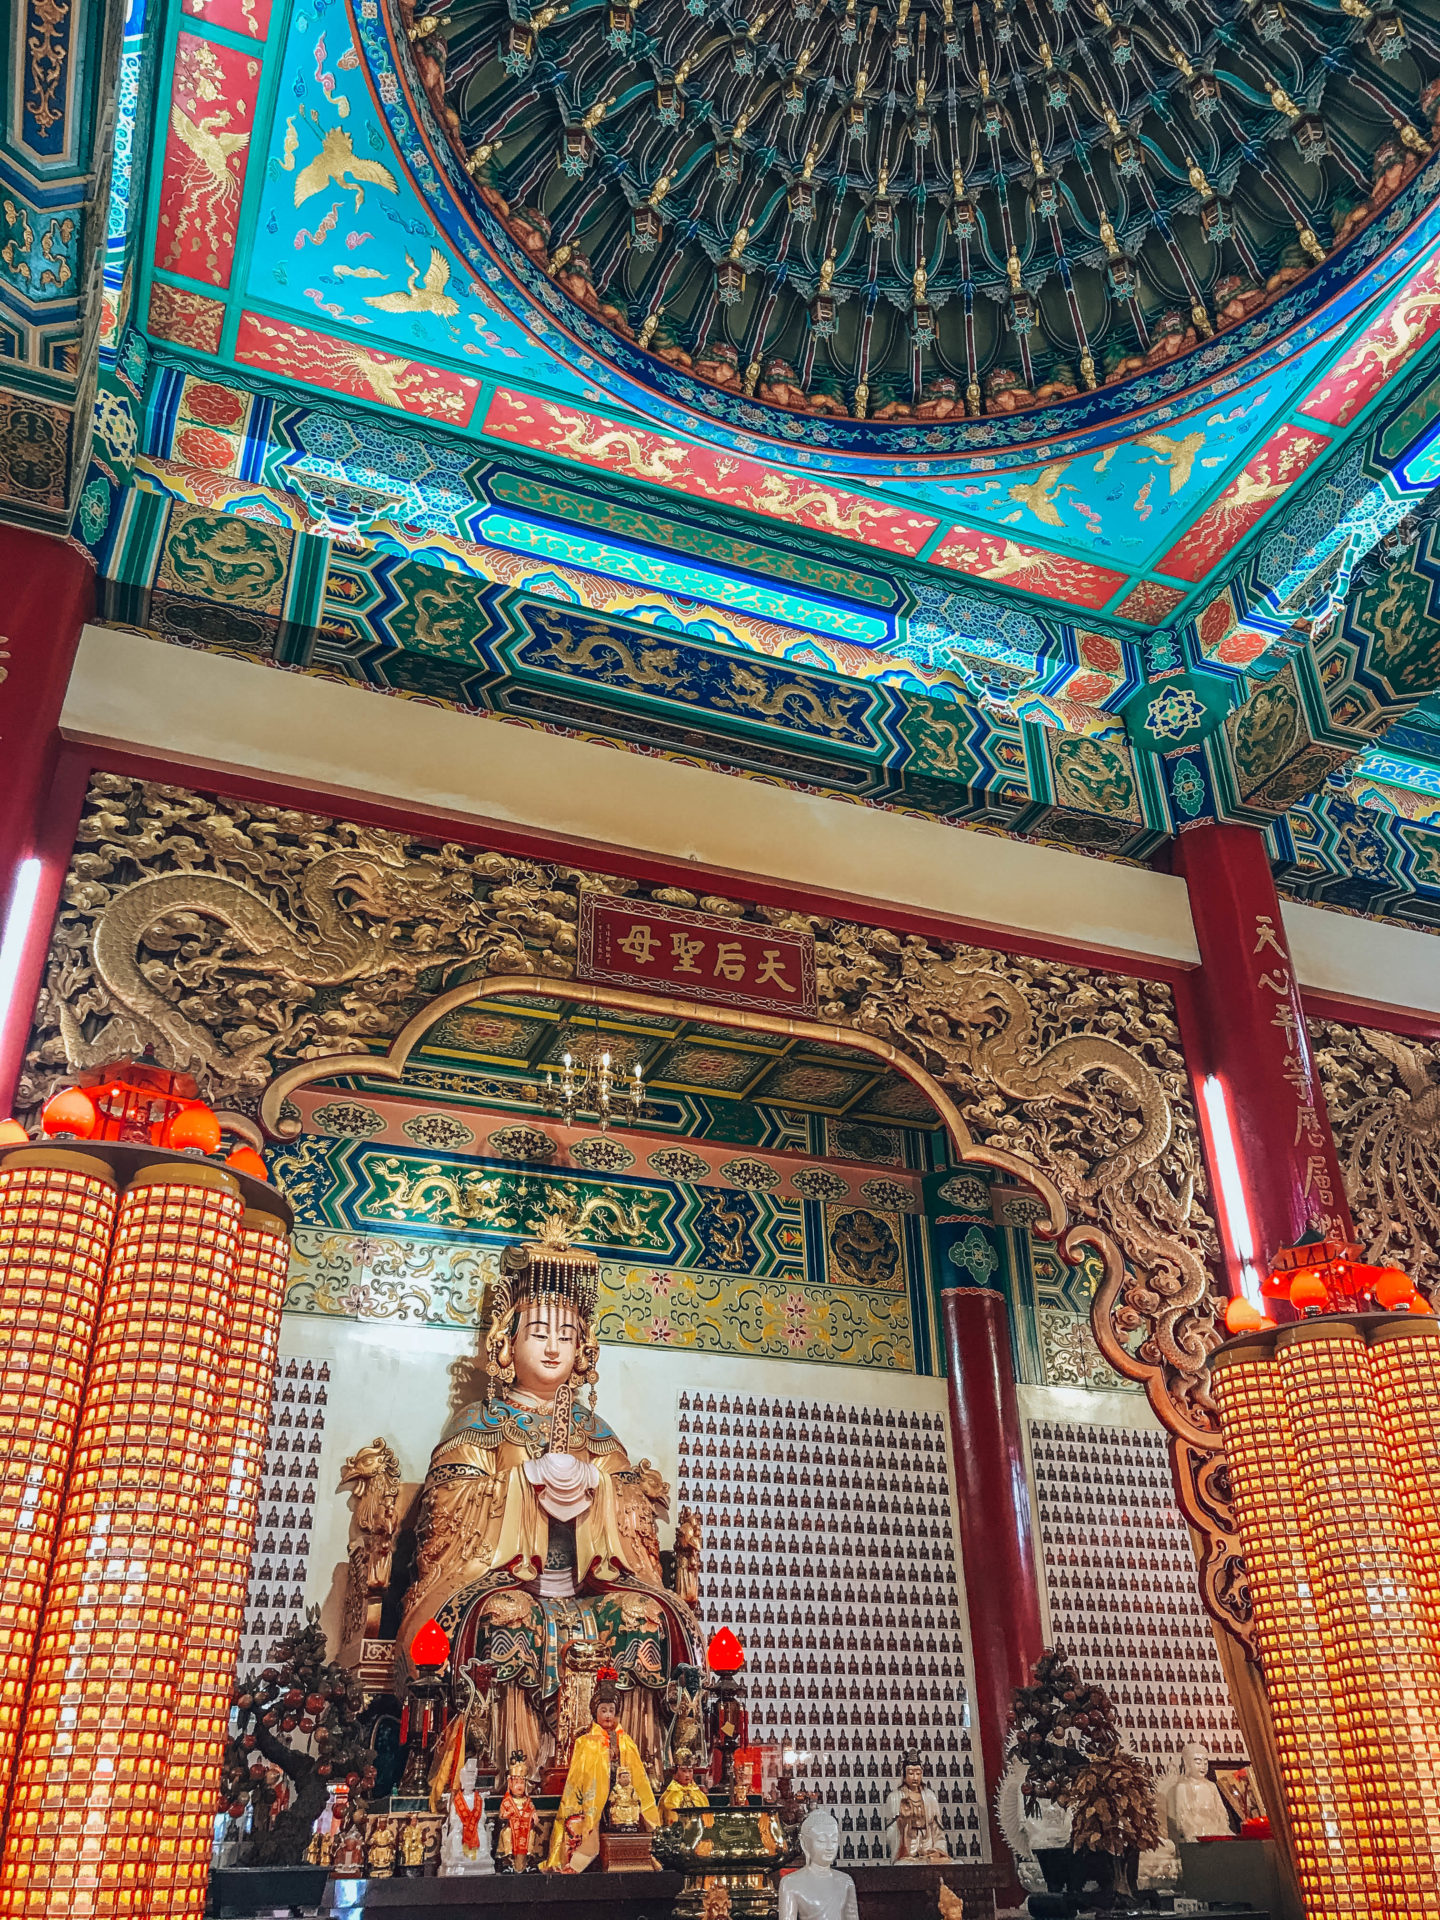 Buddhist temple of Thean Hou in KL